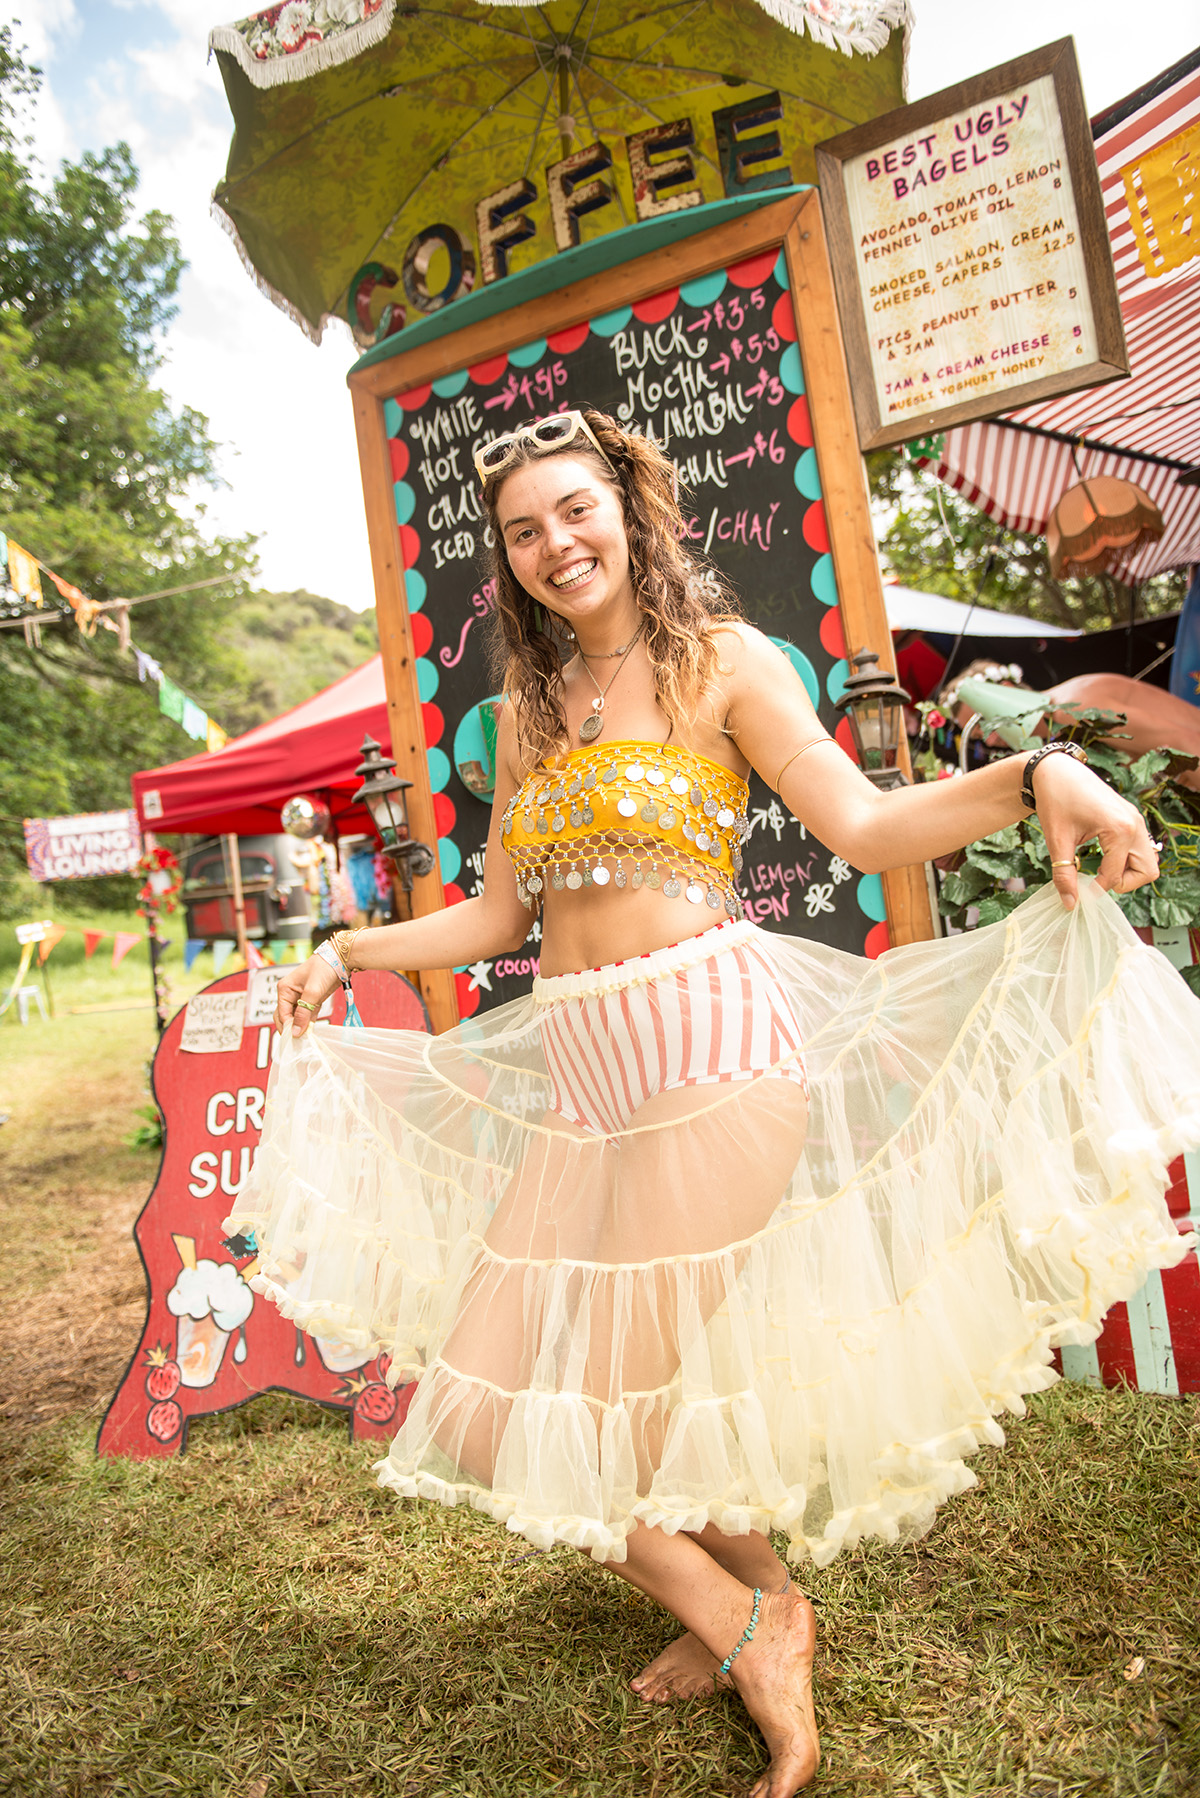 splore 2016 friday by jason burgess-6low res95.jpg